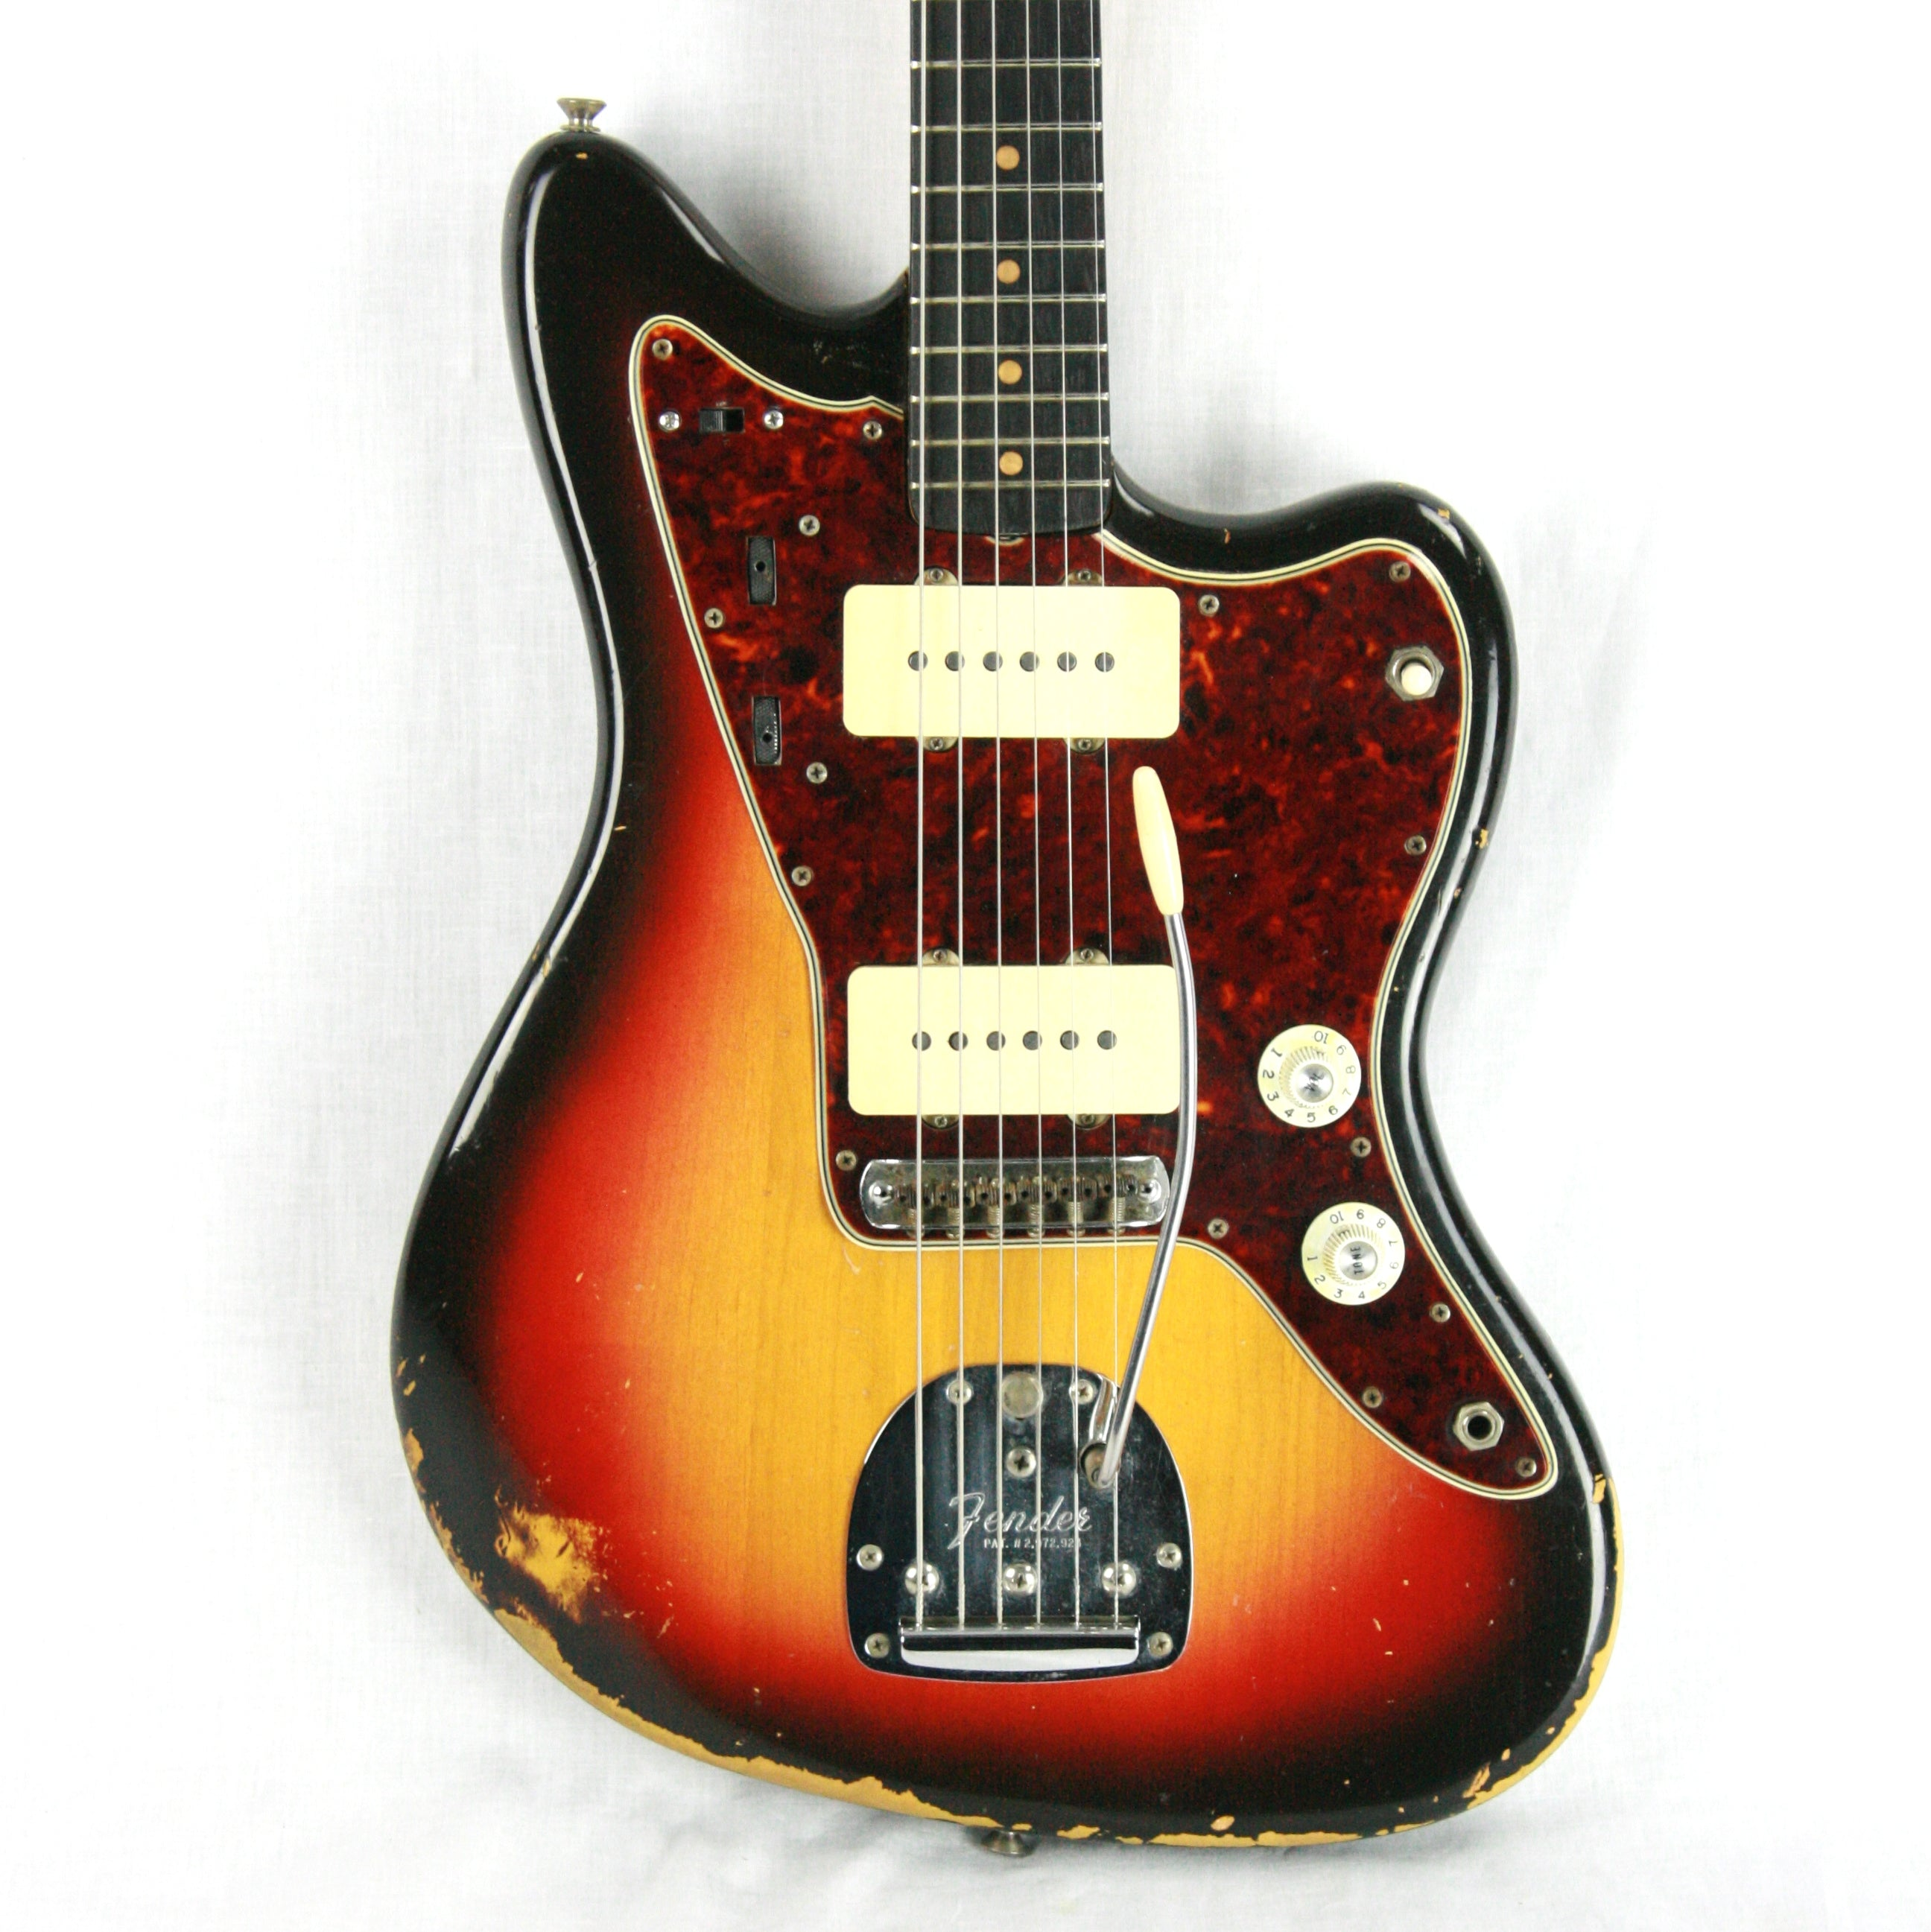 1964 Fender Jazzmaster Sunburst Pre-CBS! Clay Dots, L-Series, Offset! stratocaster telecaster